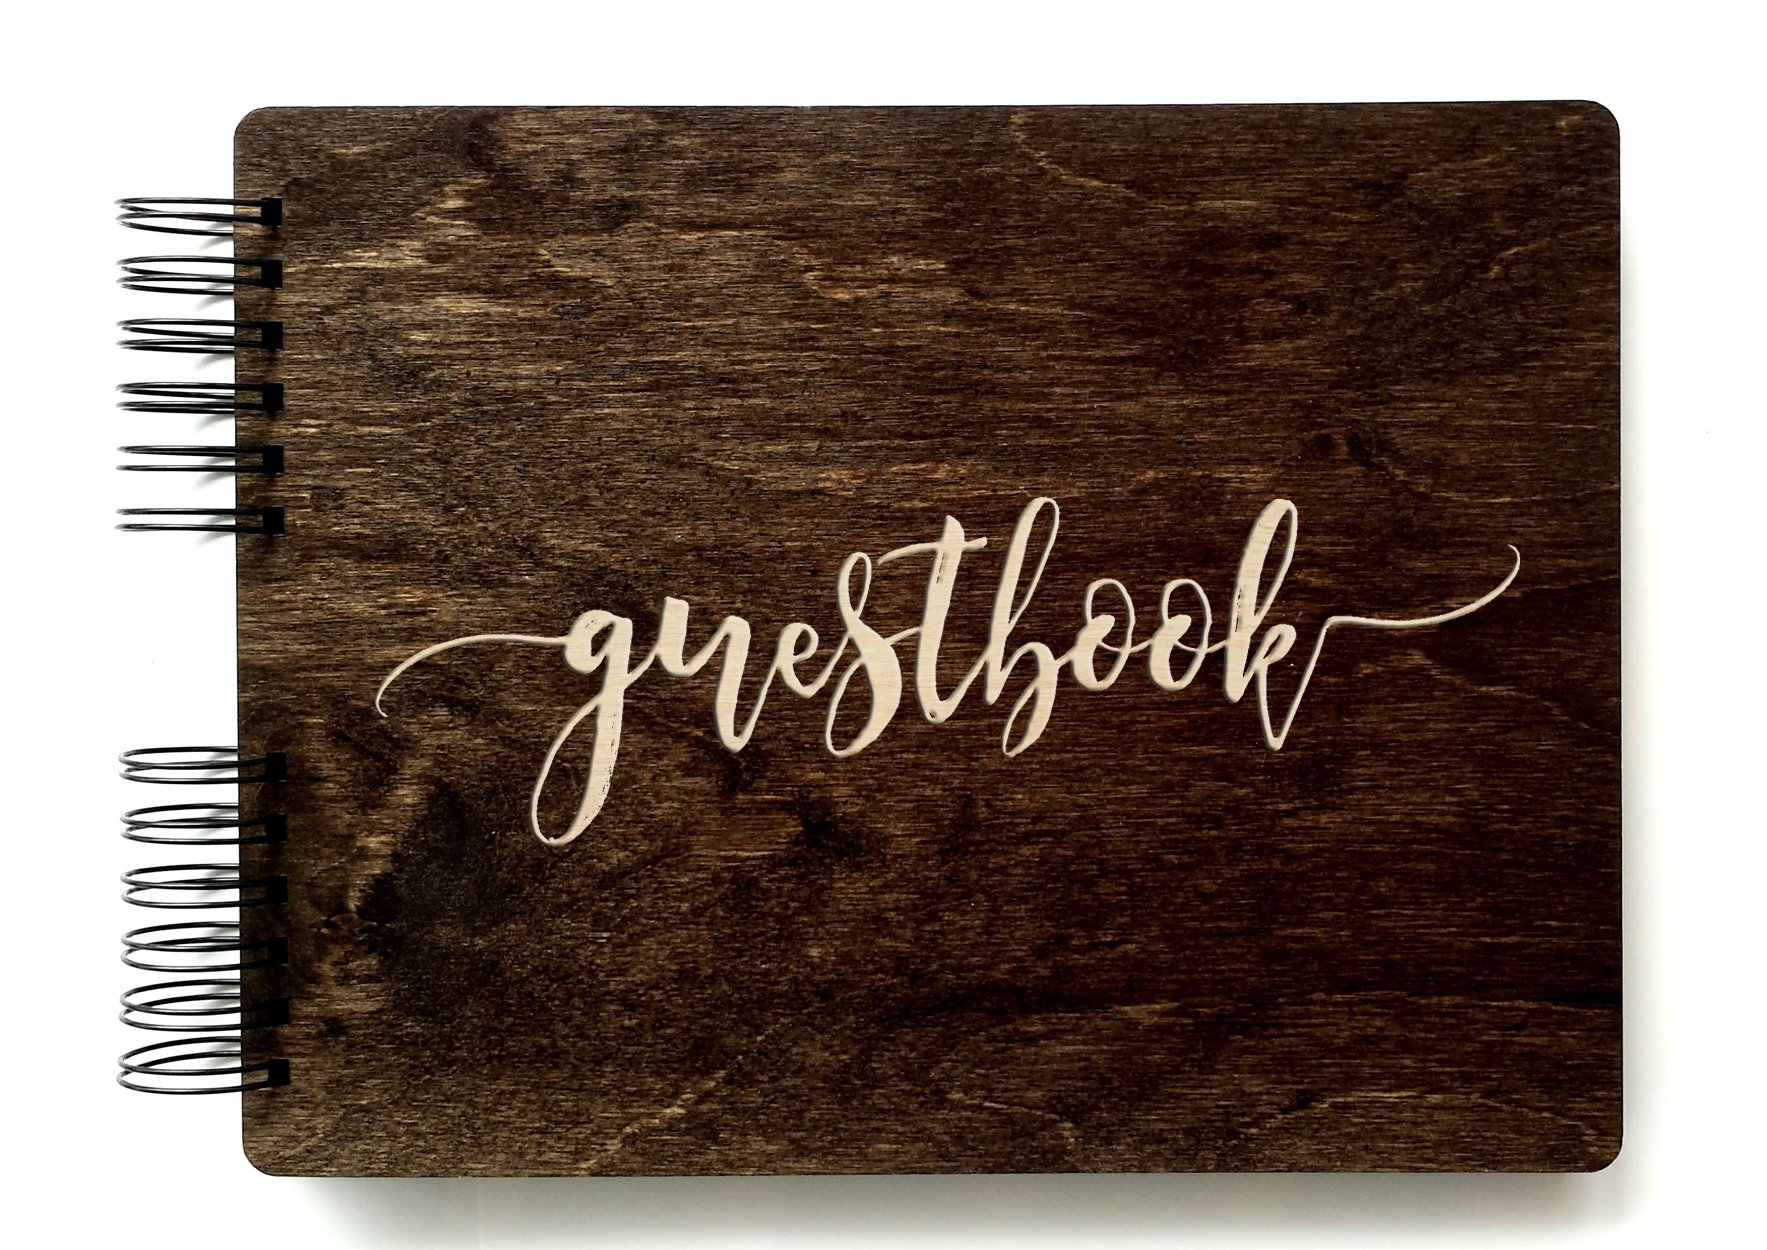 Wooden Rustic Guest Book 11'' x 8.5'' : Made in USA (All Black Cardstock Inside Pages, Front Cover GUESTBOOK Engraved) by Personalize It (Image #1)